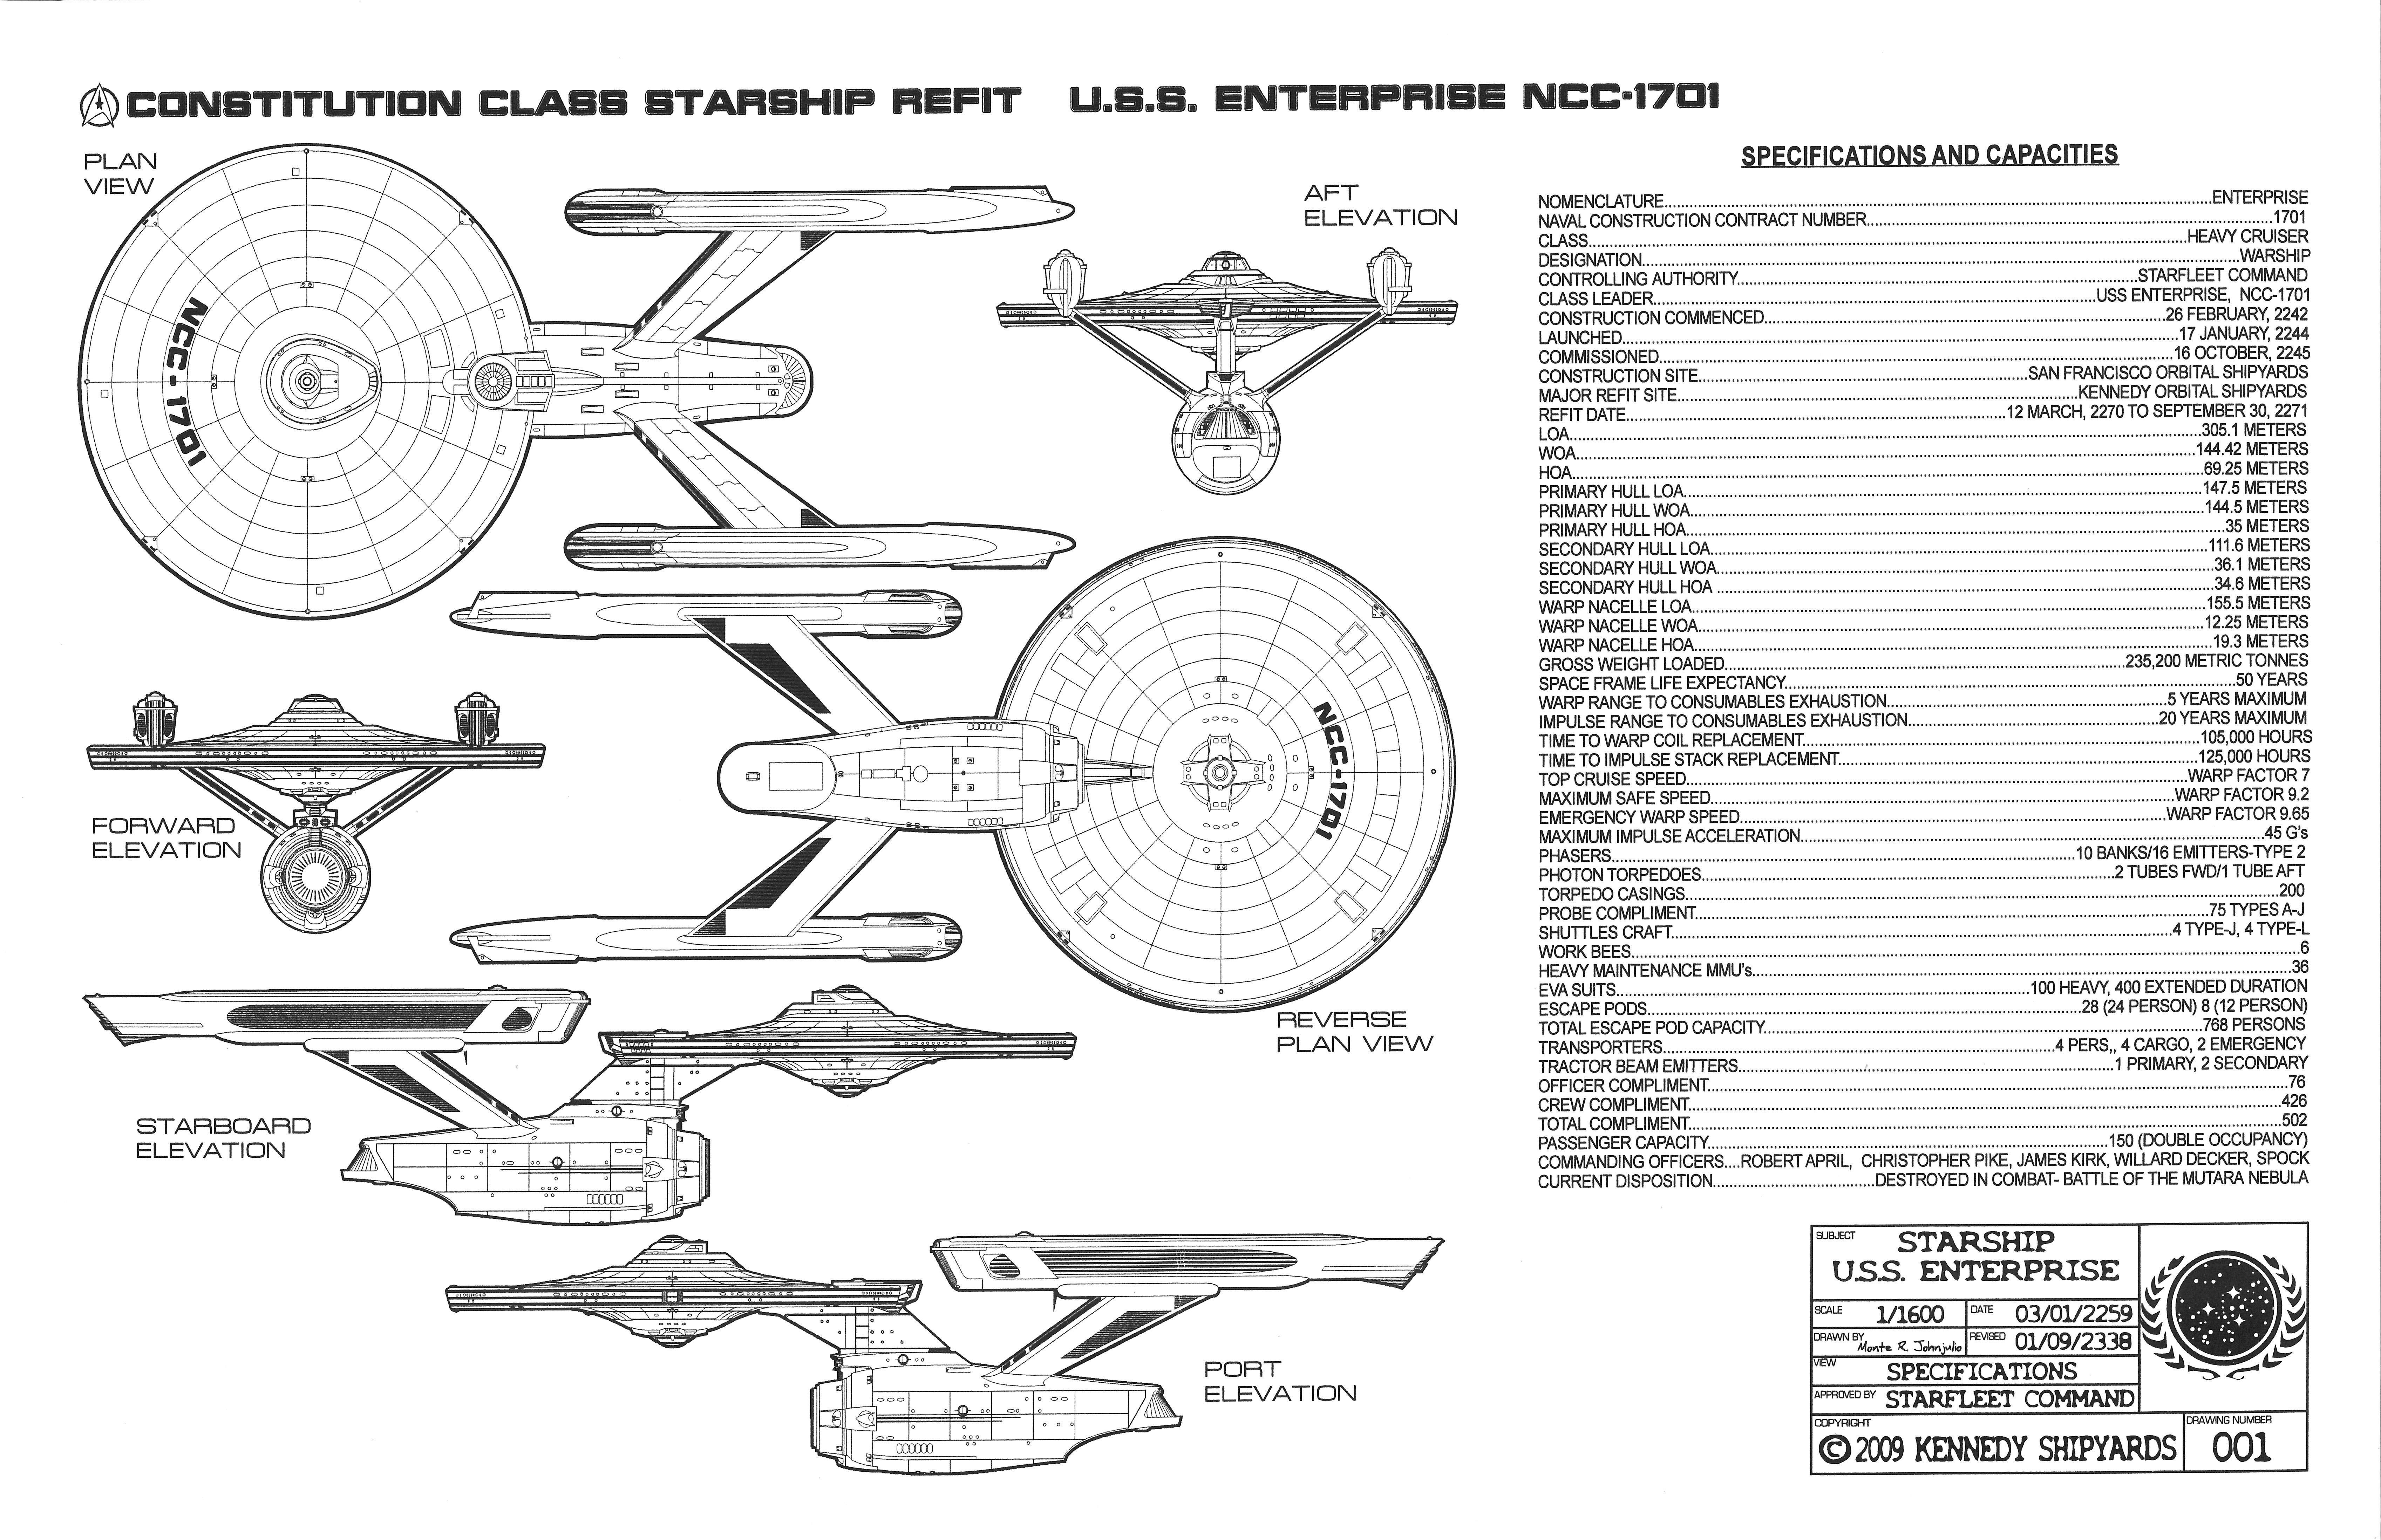 Nice U.S.S. Enterprise NCC 1701   Constitution Class Starship Refit Blueprints